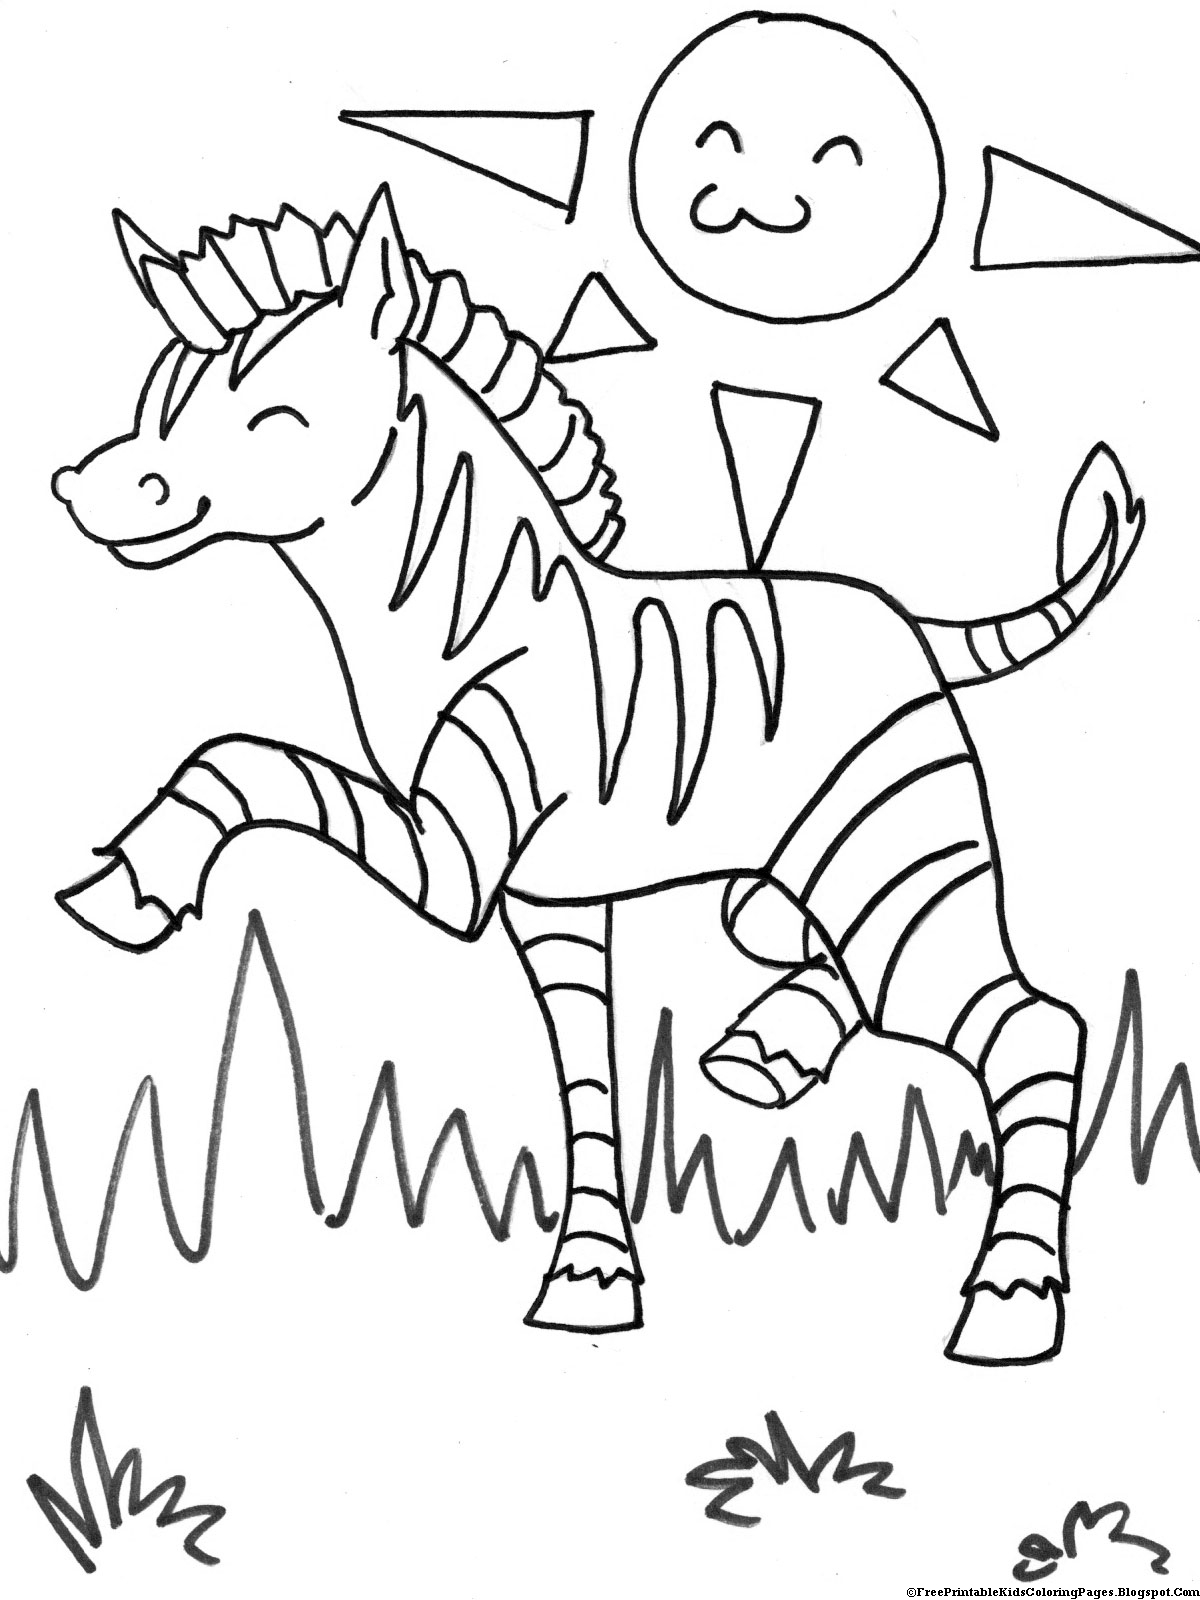 coloring picture printable zebra coloring pages free printable kids coloring pages coloring picture printable